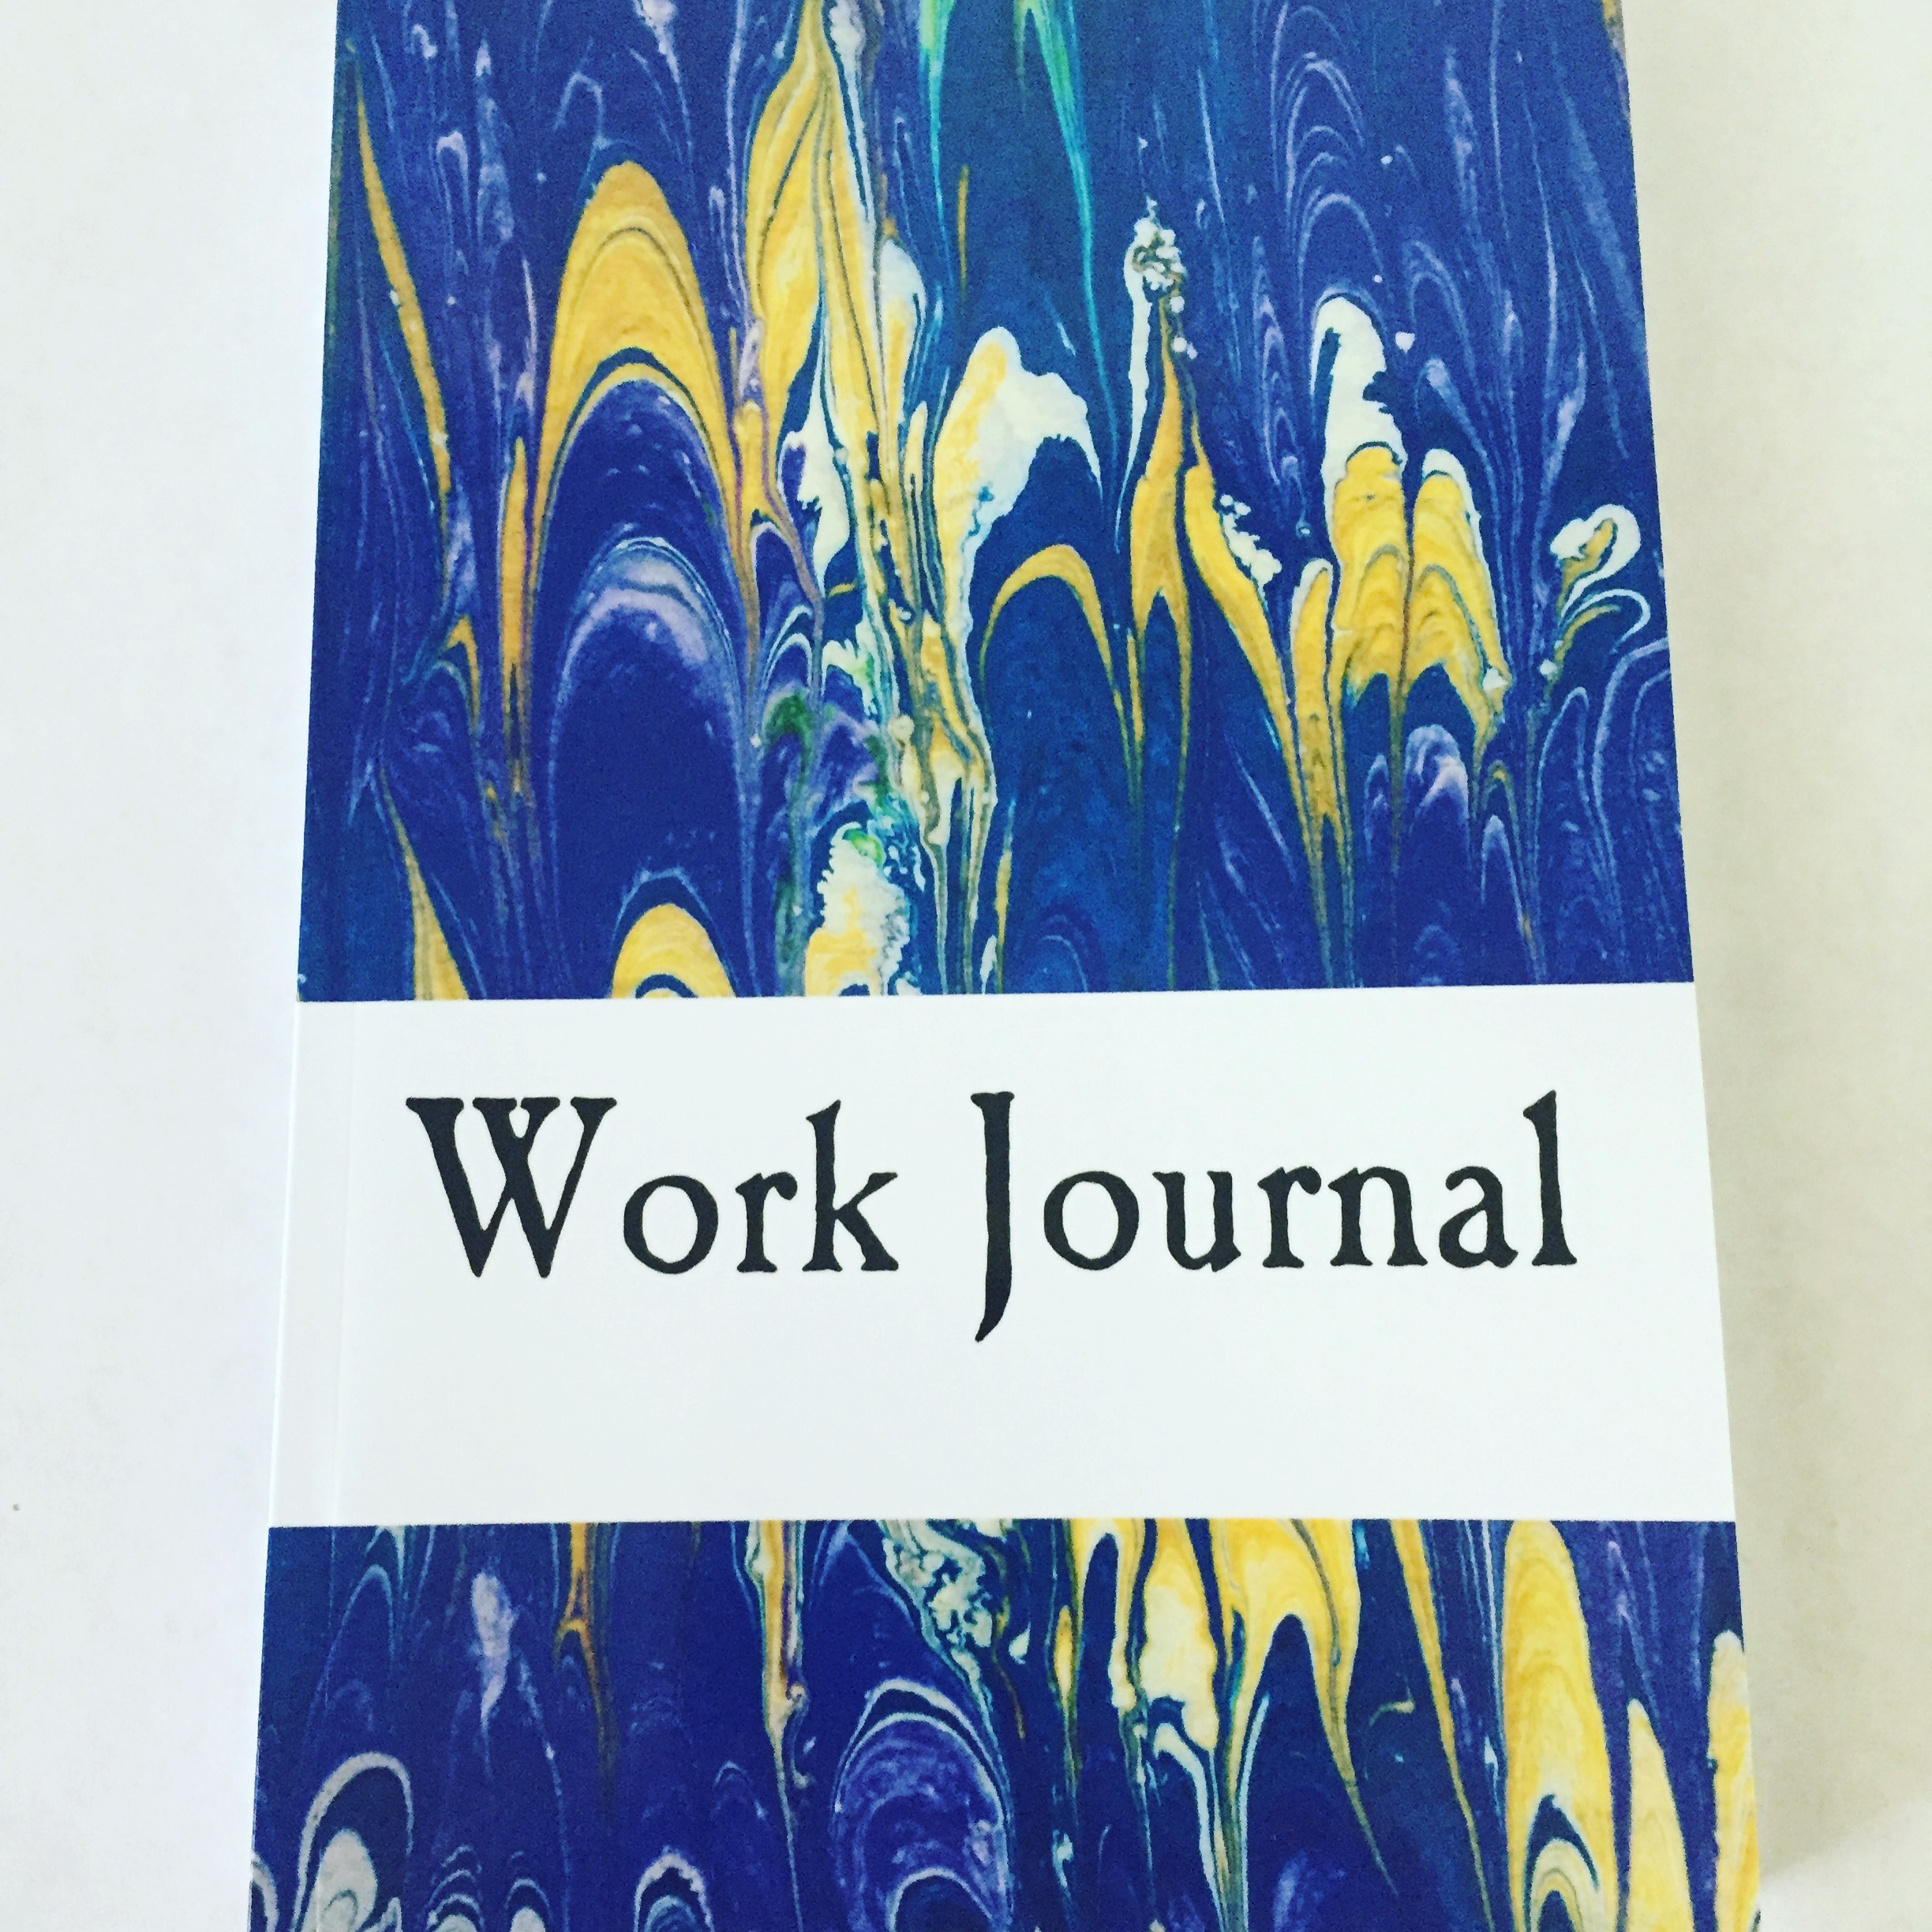 Work Journal